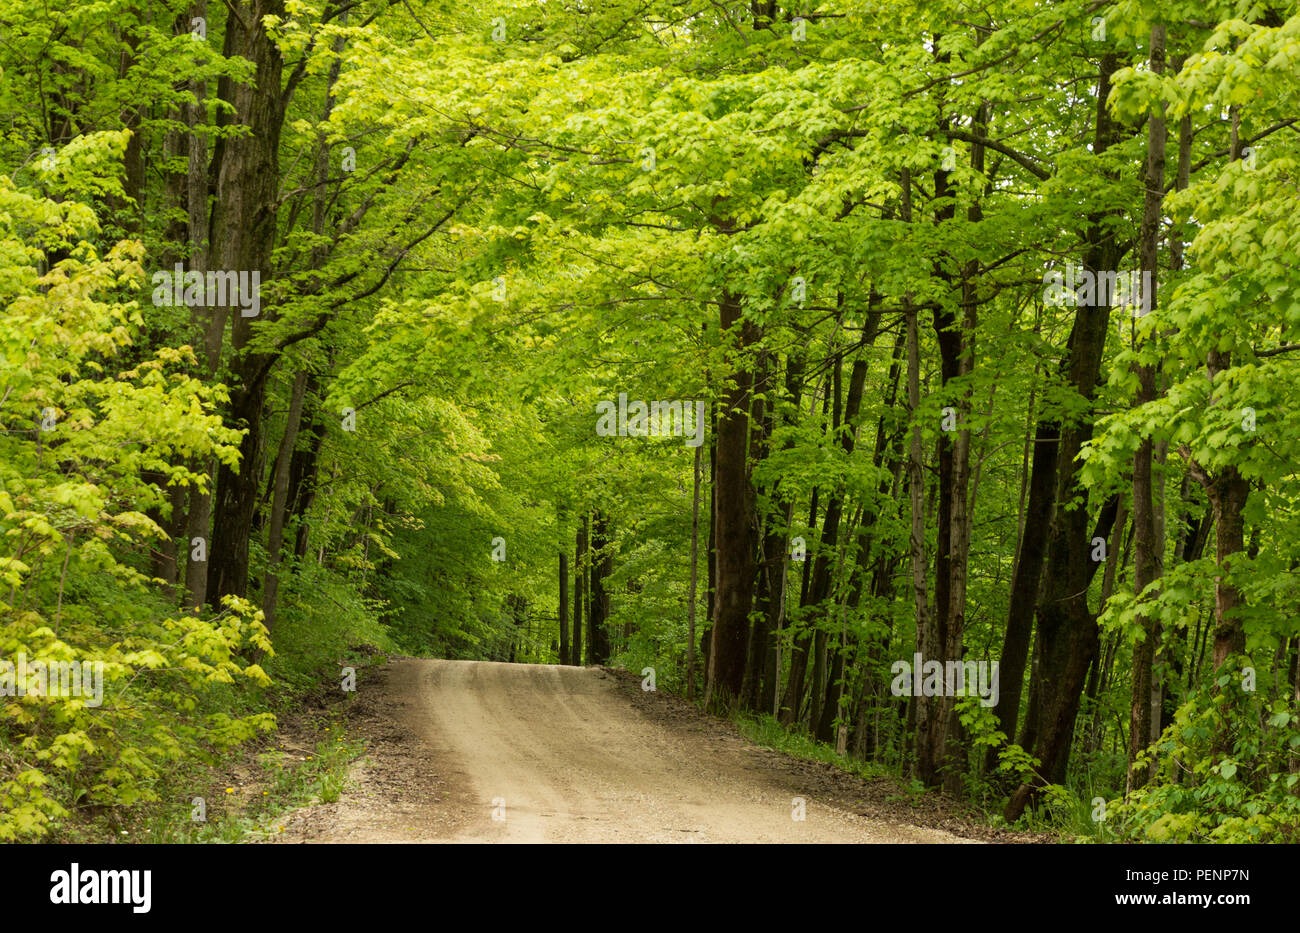 An inviting dirt road leading into a green fresh spring maple woodland - Stock Image